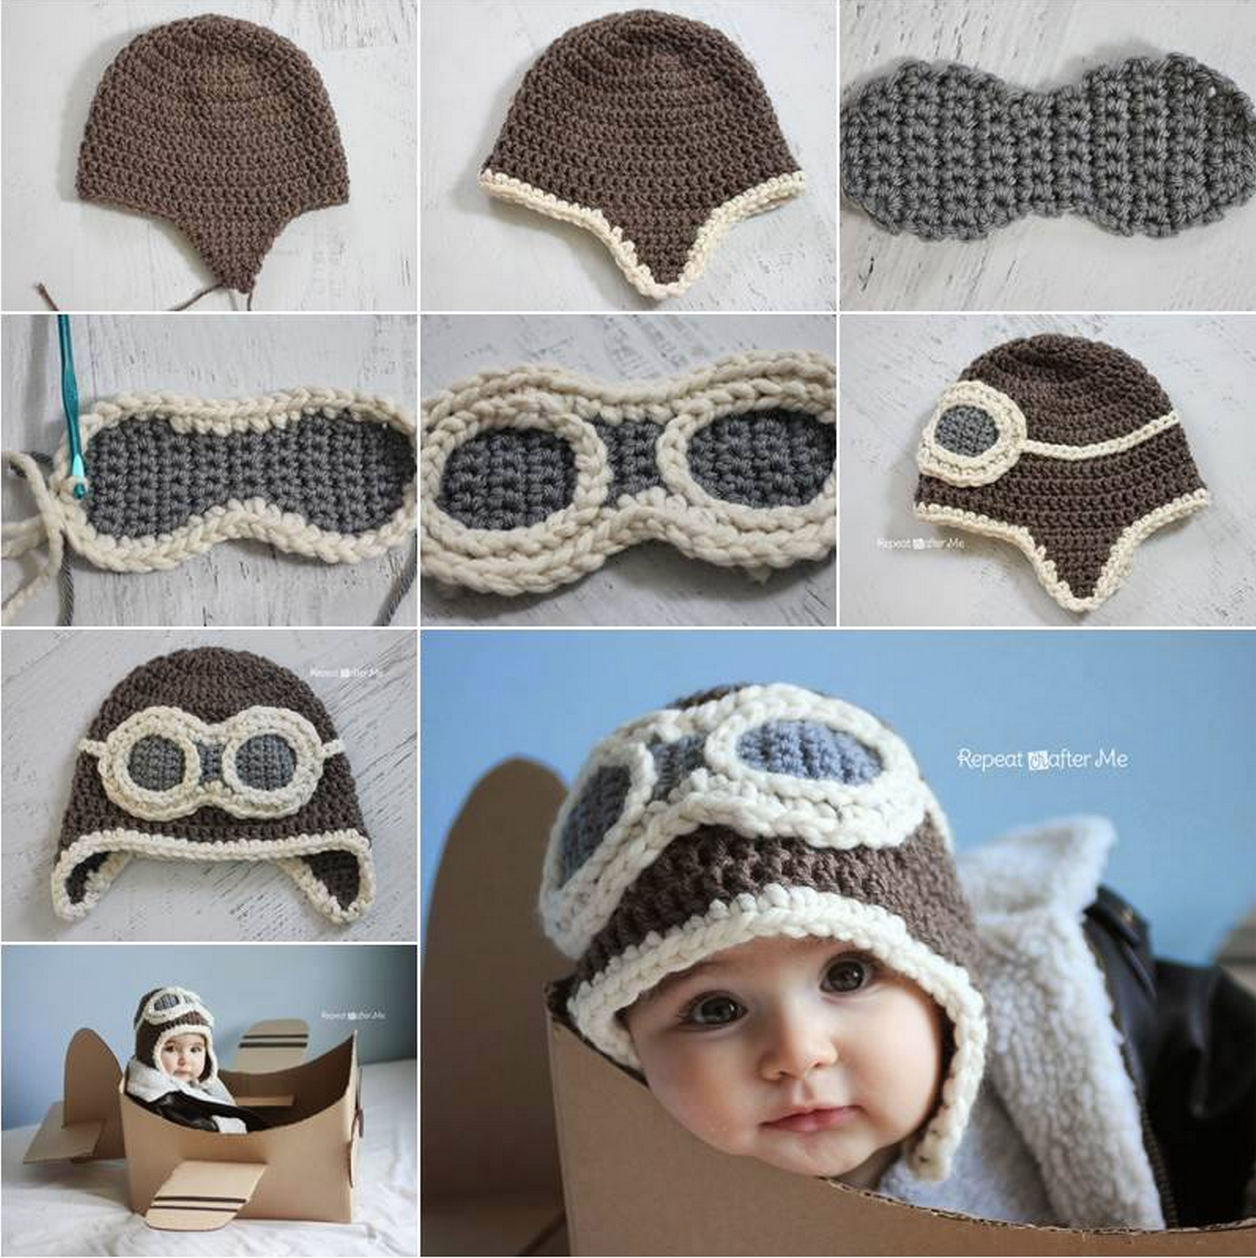 Knitting Pattern For Baby Pilot Hat : Crochet Aviator Hat Youtube Video Lots Of Free Pattern Aviator hat, Free pa...